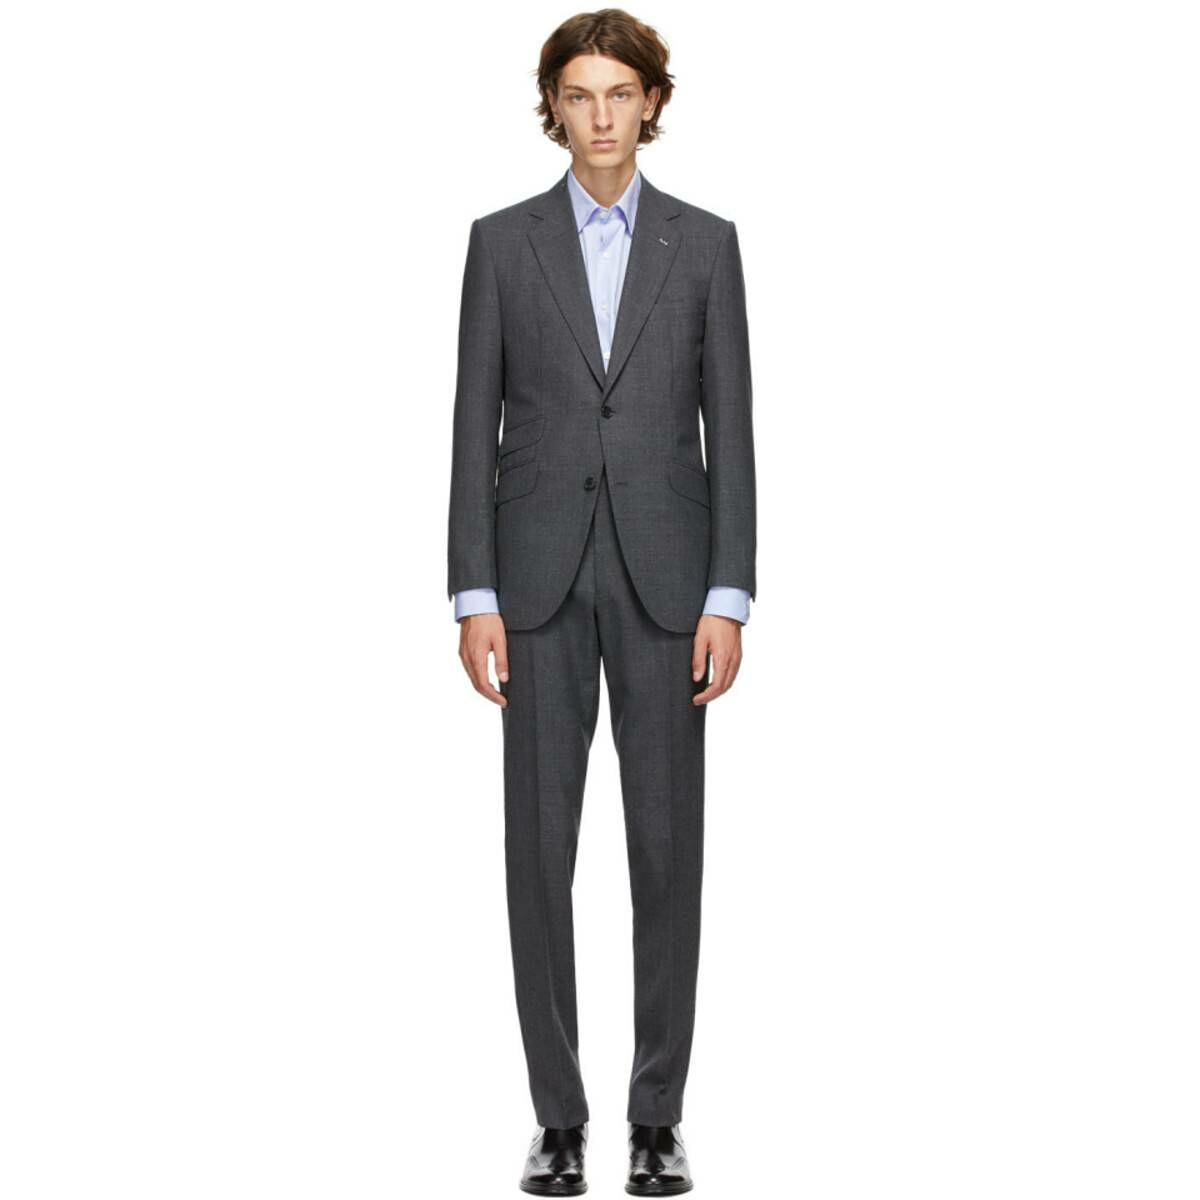 Husbands Grey Mohair Heavy Suit Ssense USA MEN Men FASHION Mens SUITS